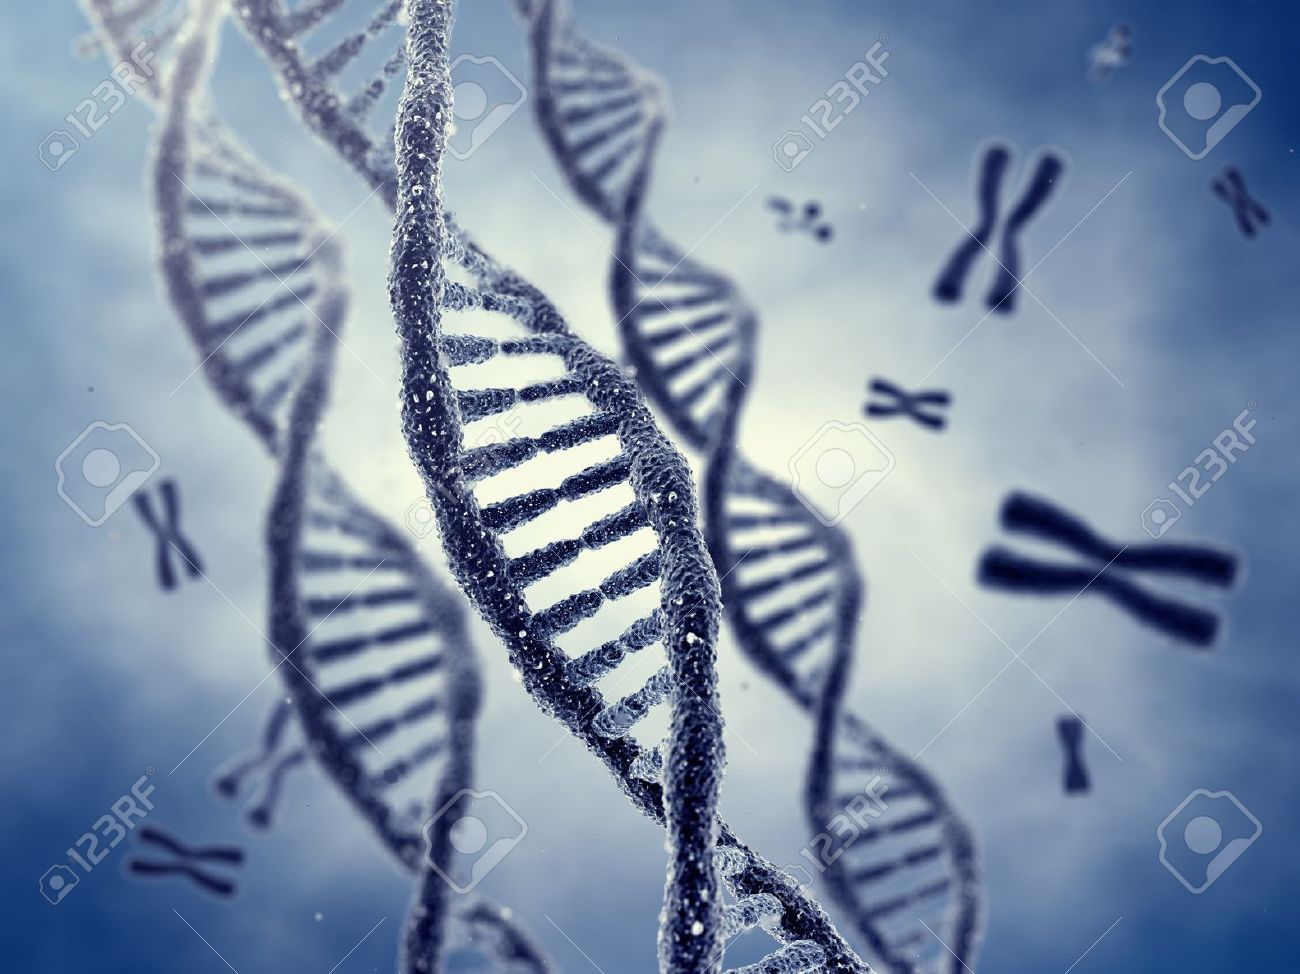 Dna double helix molecules and chromosomes Stock Photo - 15398795